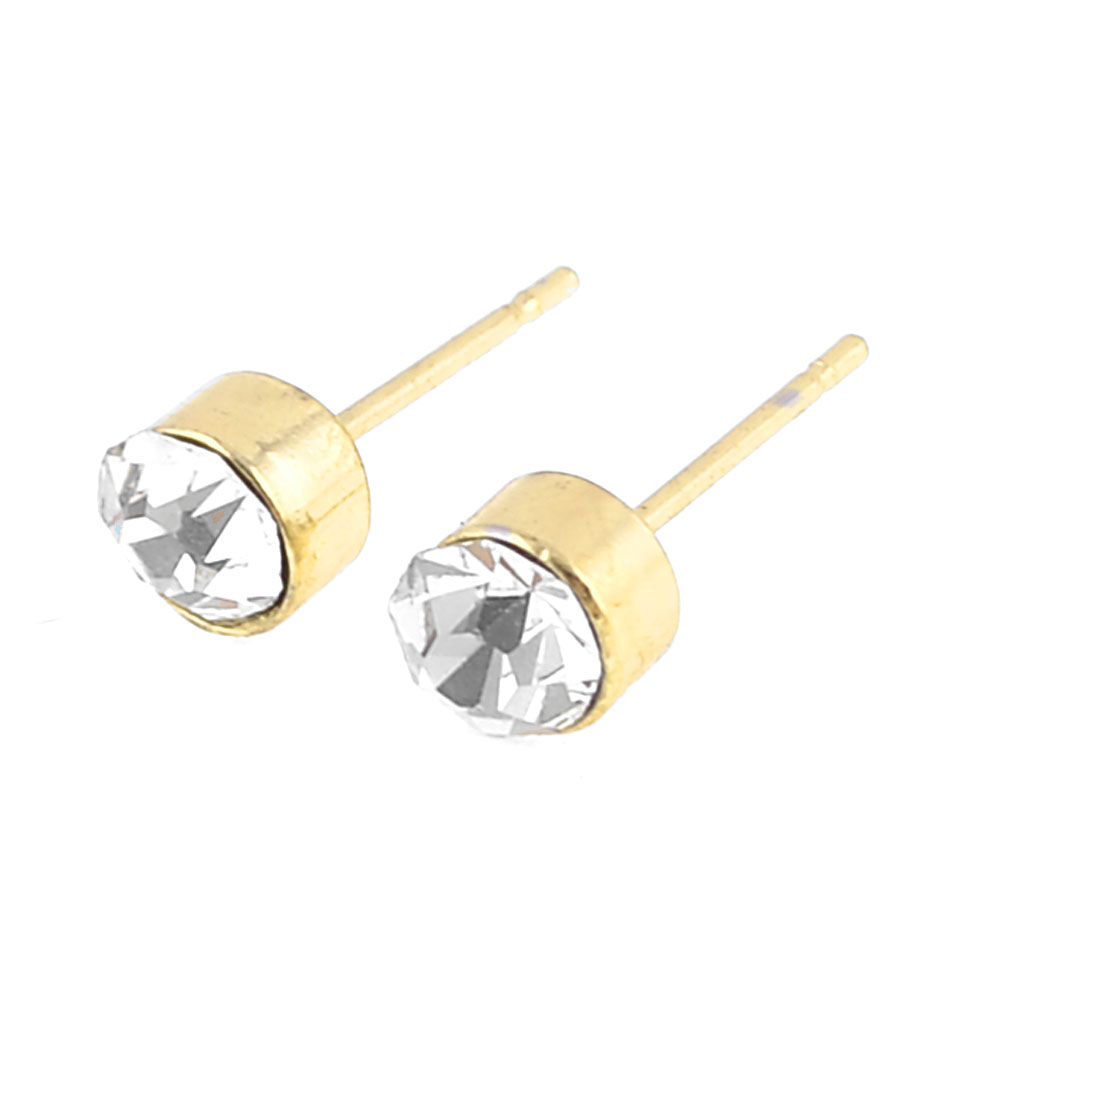 Pair Clear Rhinestone Stud Earrings Ornament Gold Tone for Ladies Woman